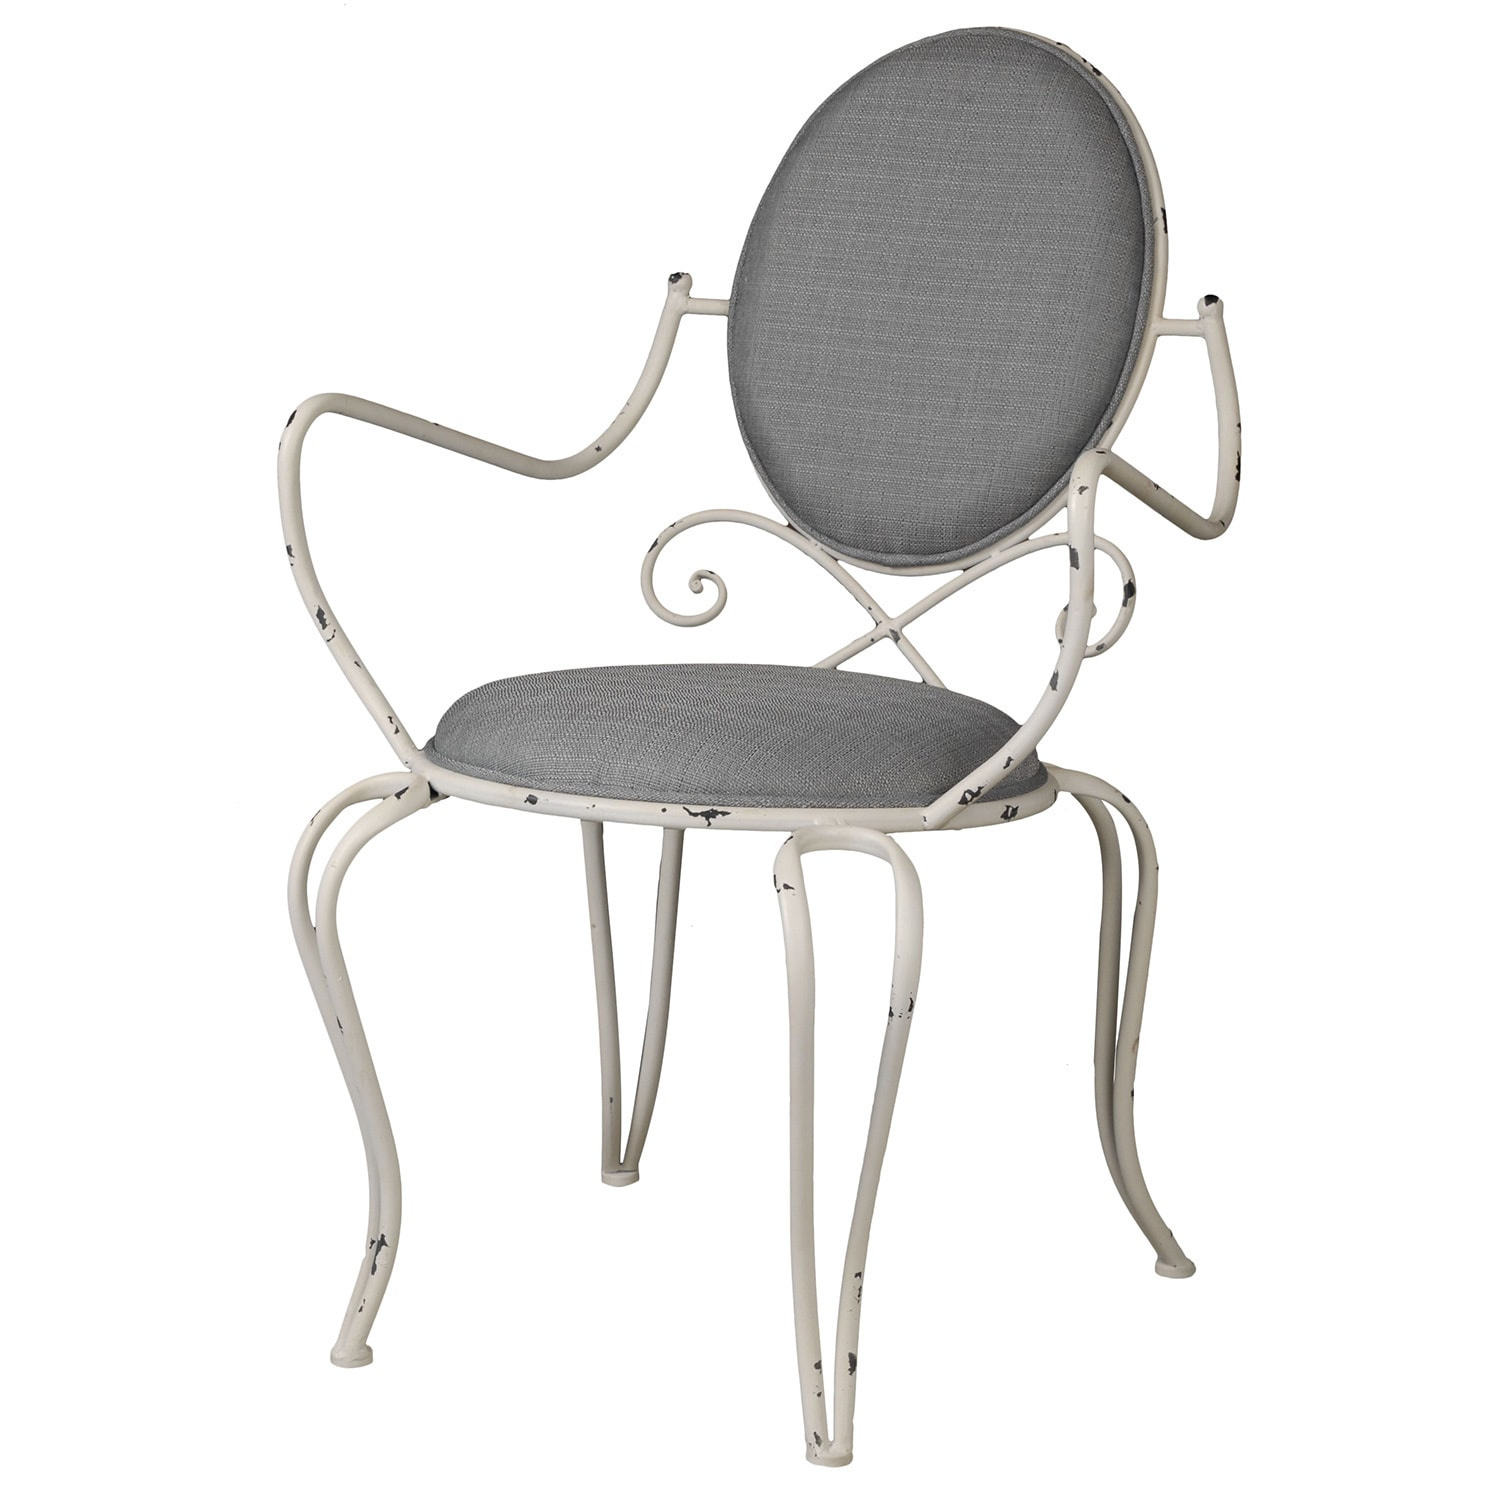 distressed metal furniture.  Metal Louis White Distressed Metal Chair  Free Shipping Today Overstock  16961965 Inside Furniture